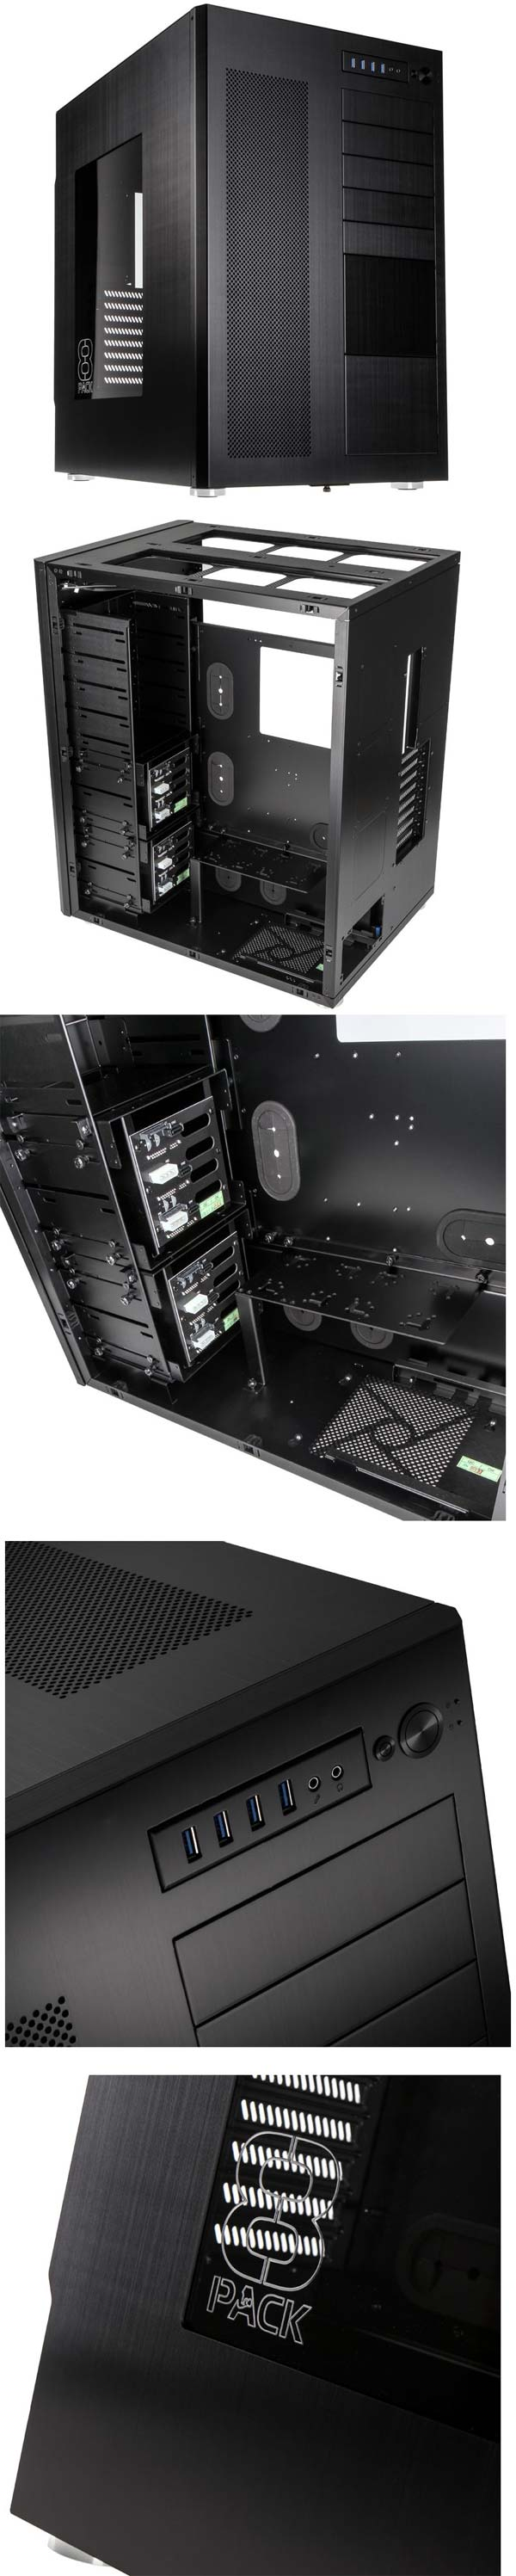 Могучий корпус Lian Li PC-D888WX 8Pack Edition